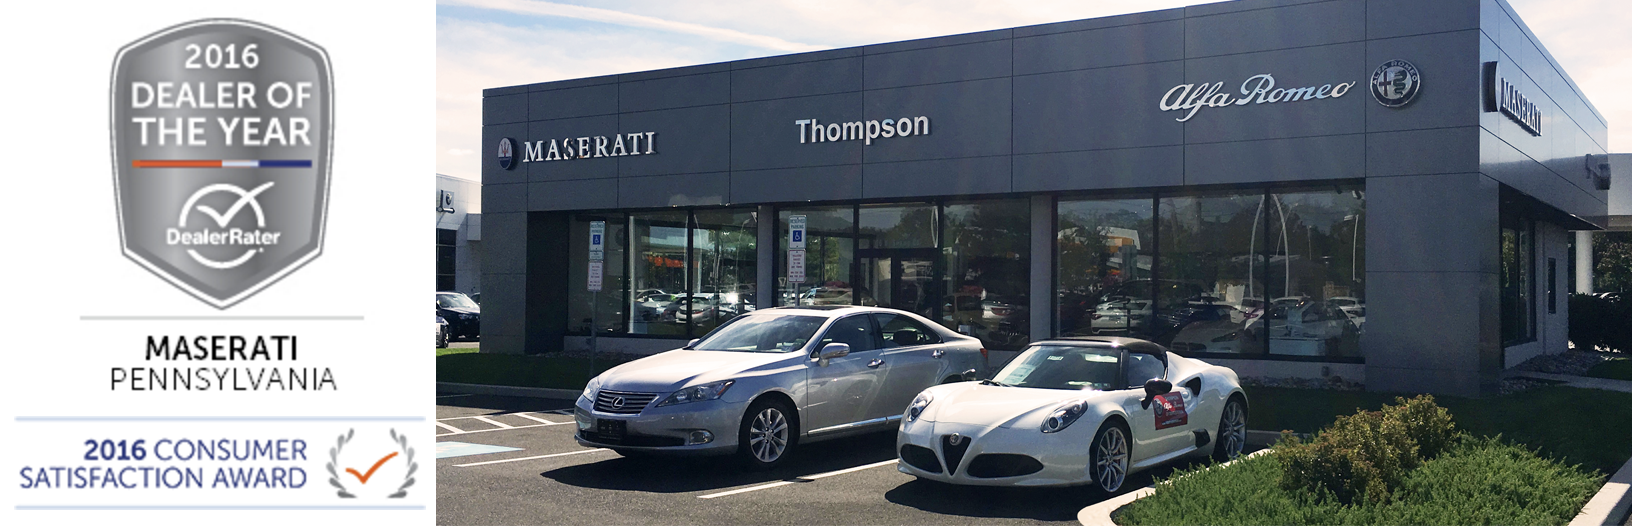 Pennsylvania Maserati Dealership